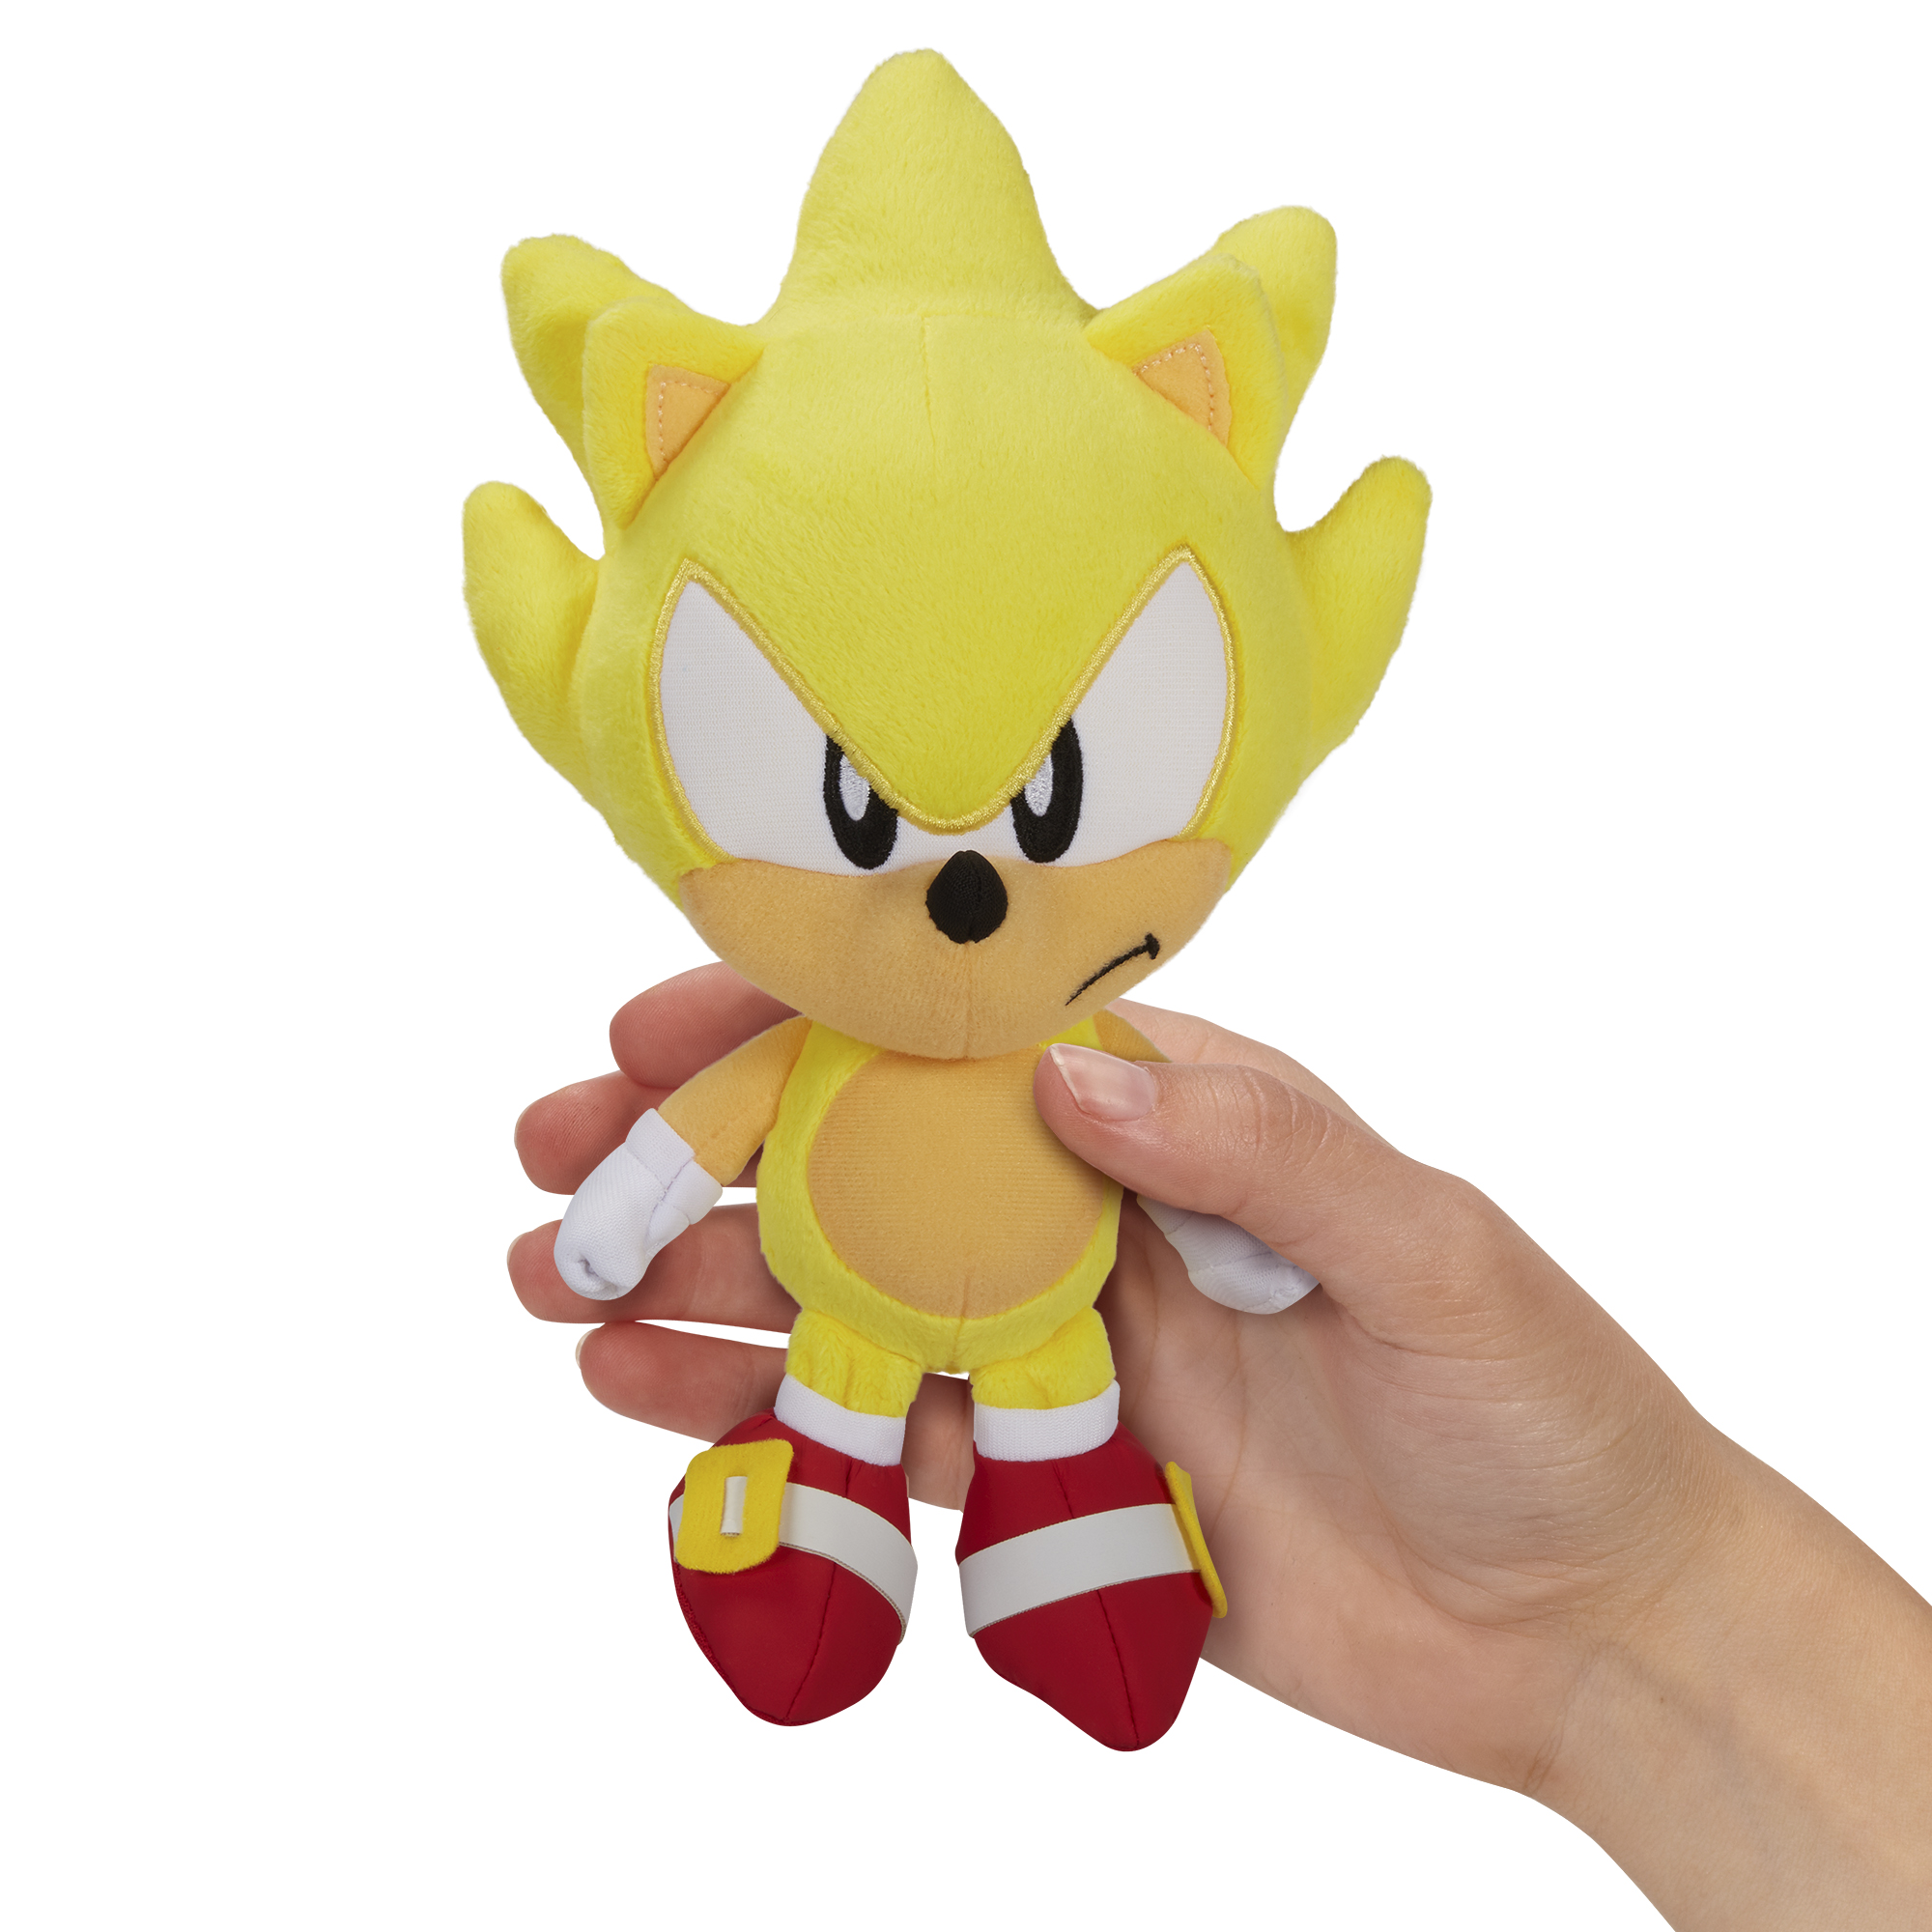 Sonic the Hedgehog - 7in Basic Plush - Super Sonic